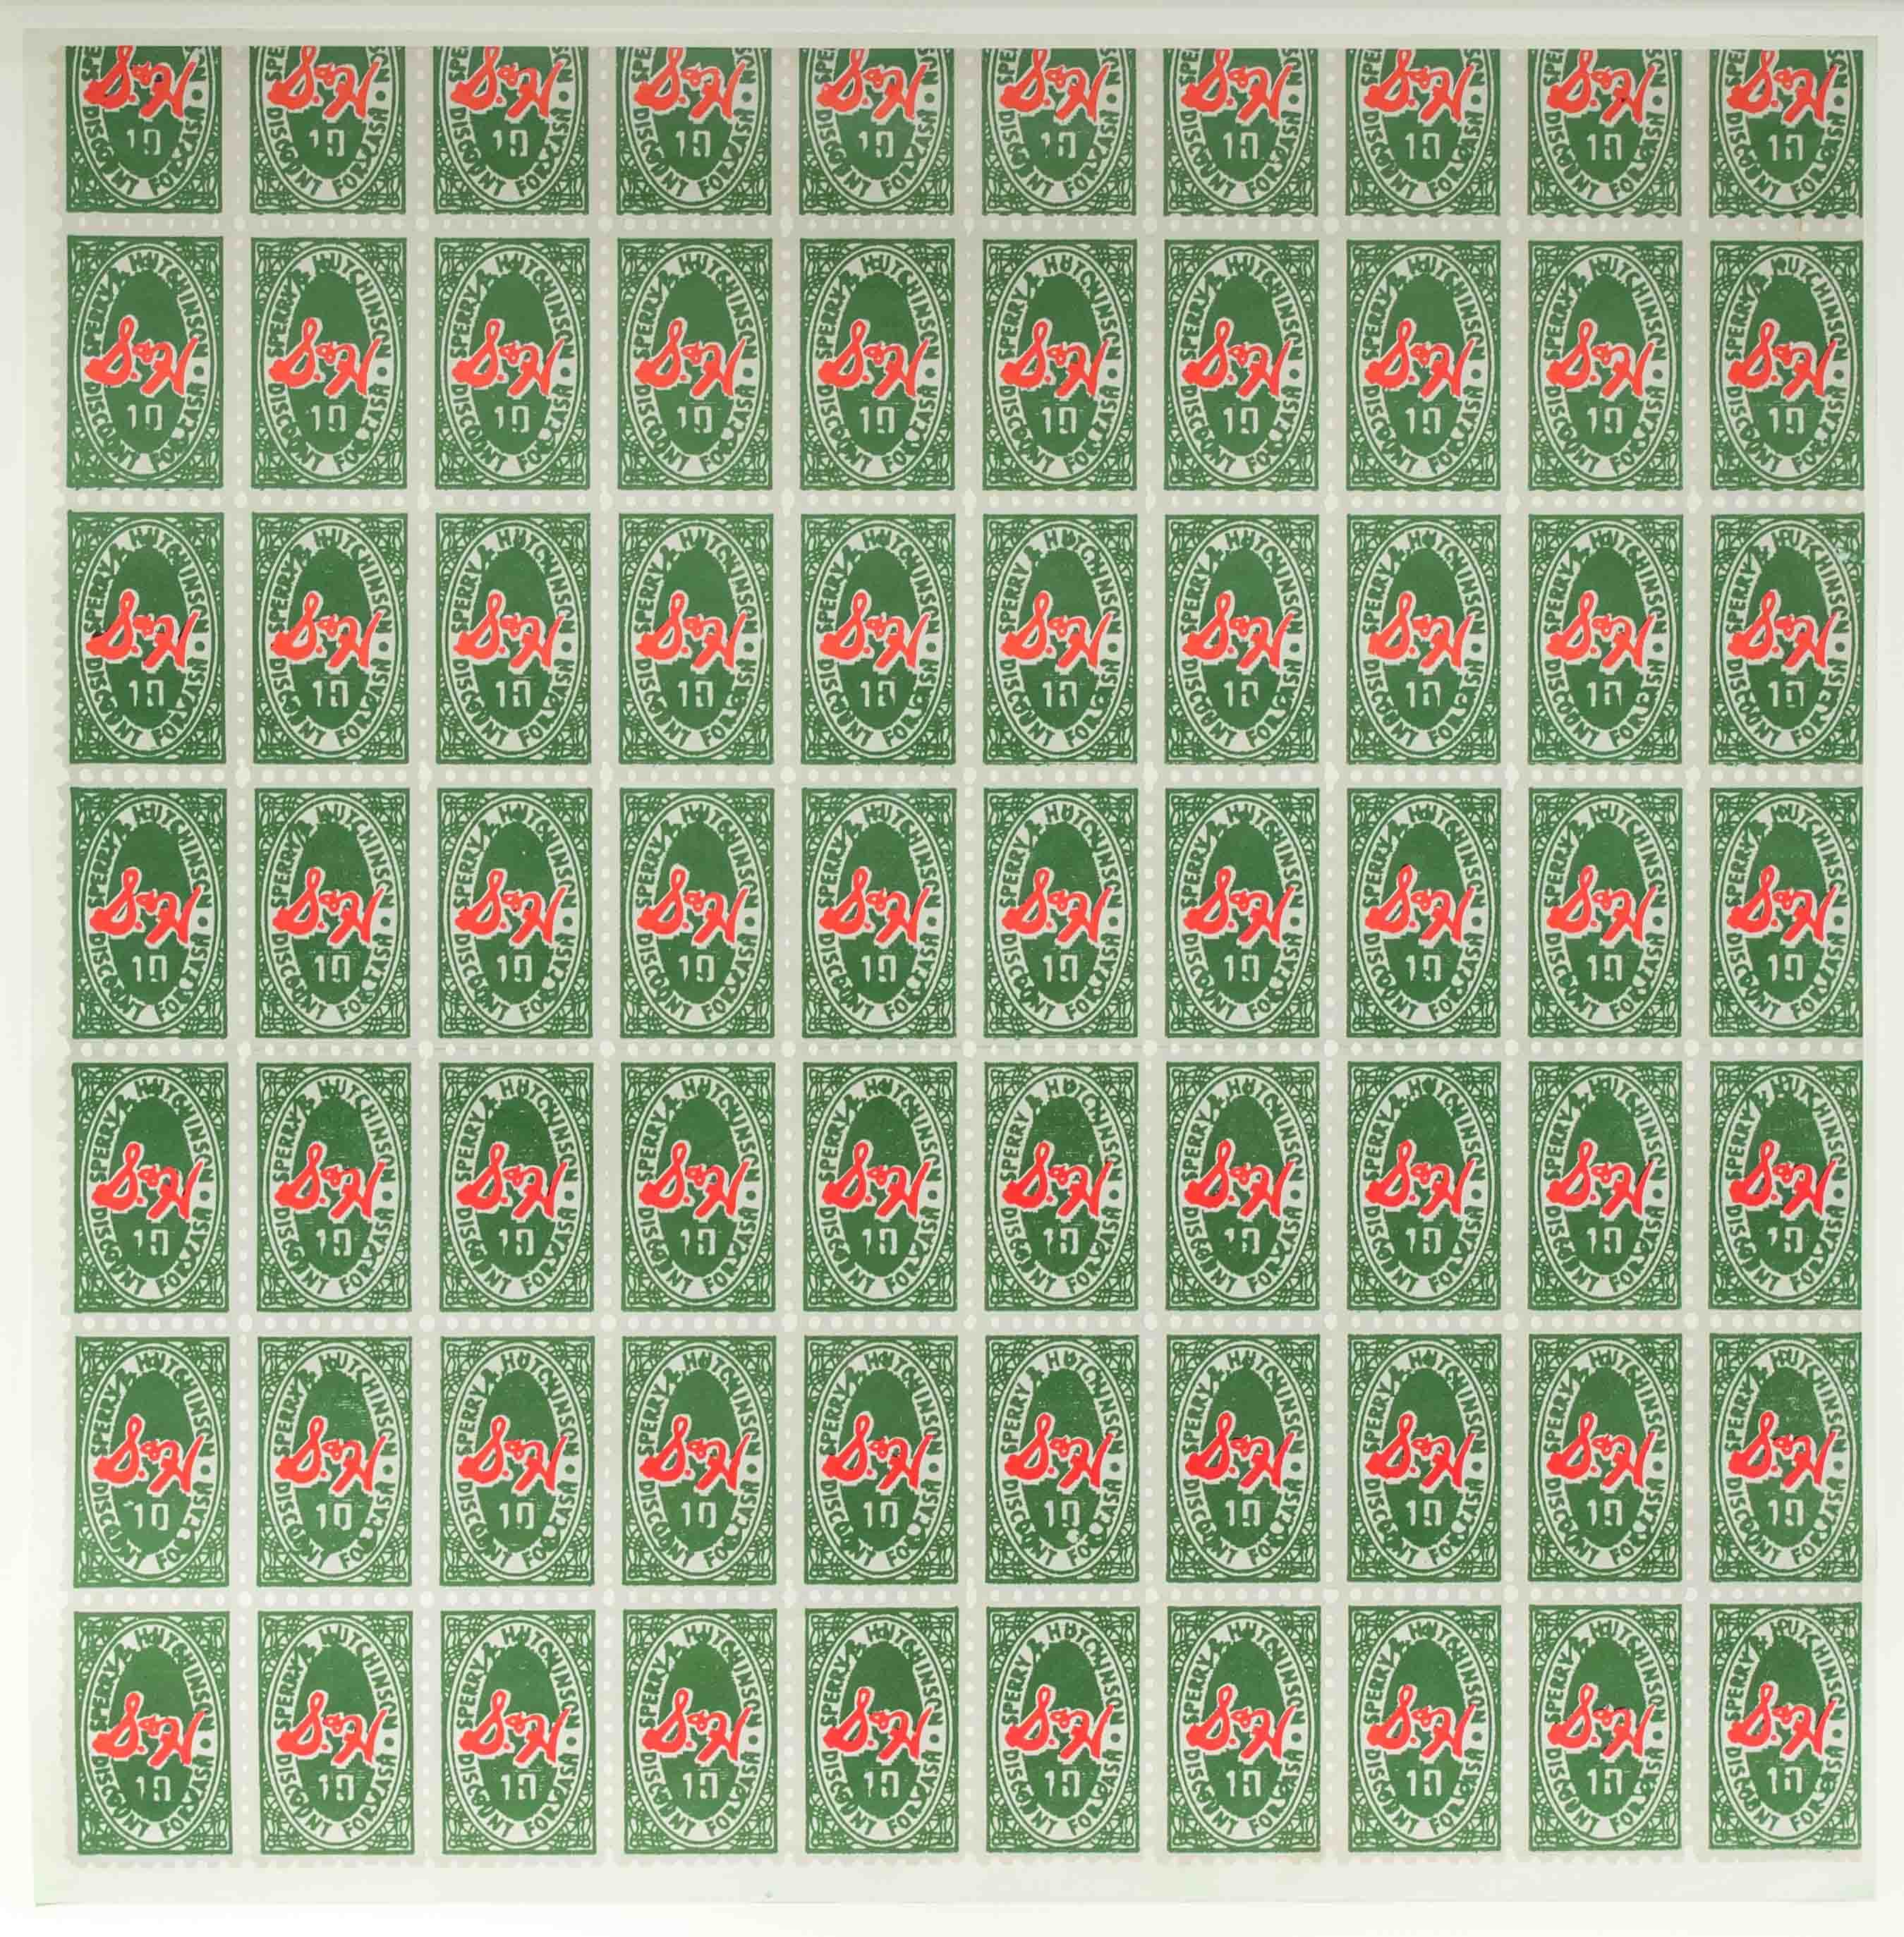 alt S & H Green Stamps, 1965